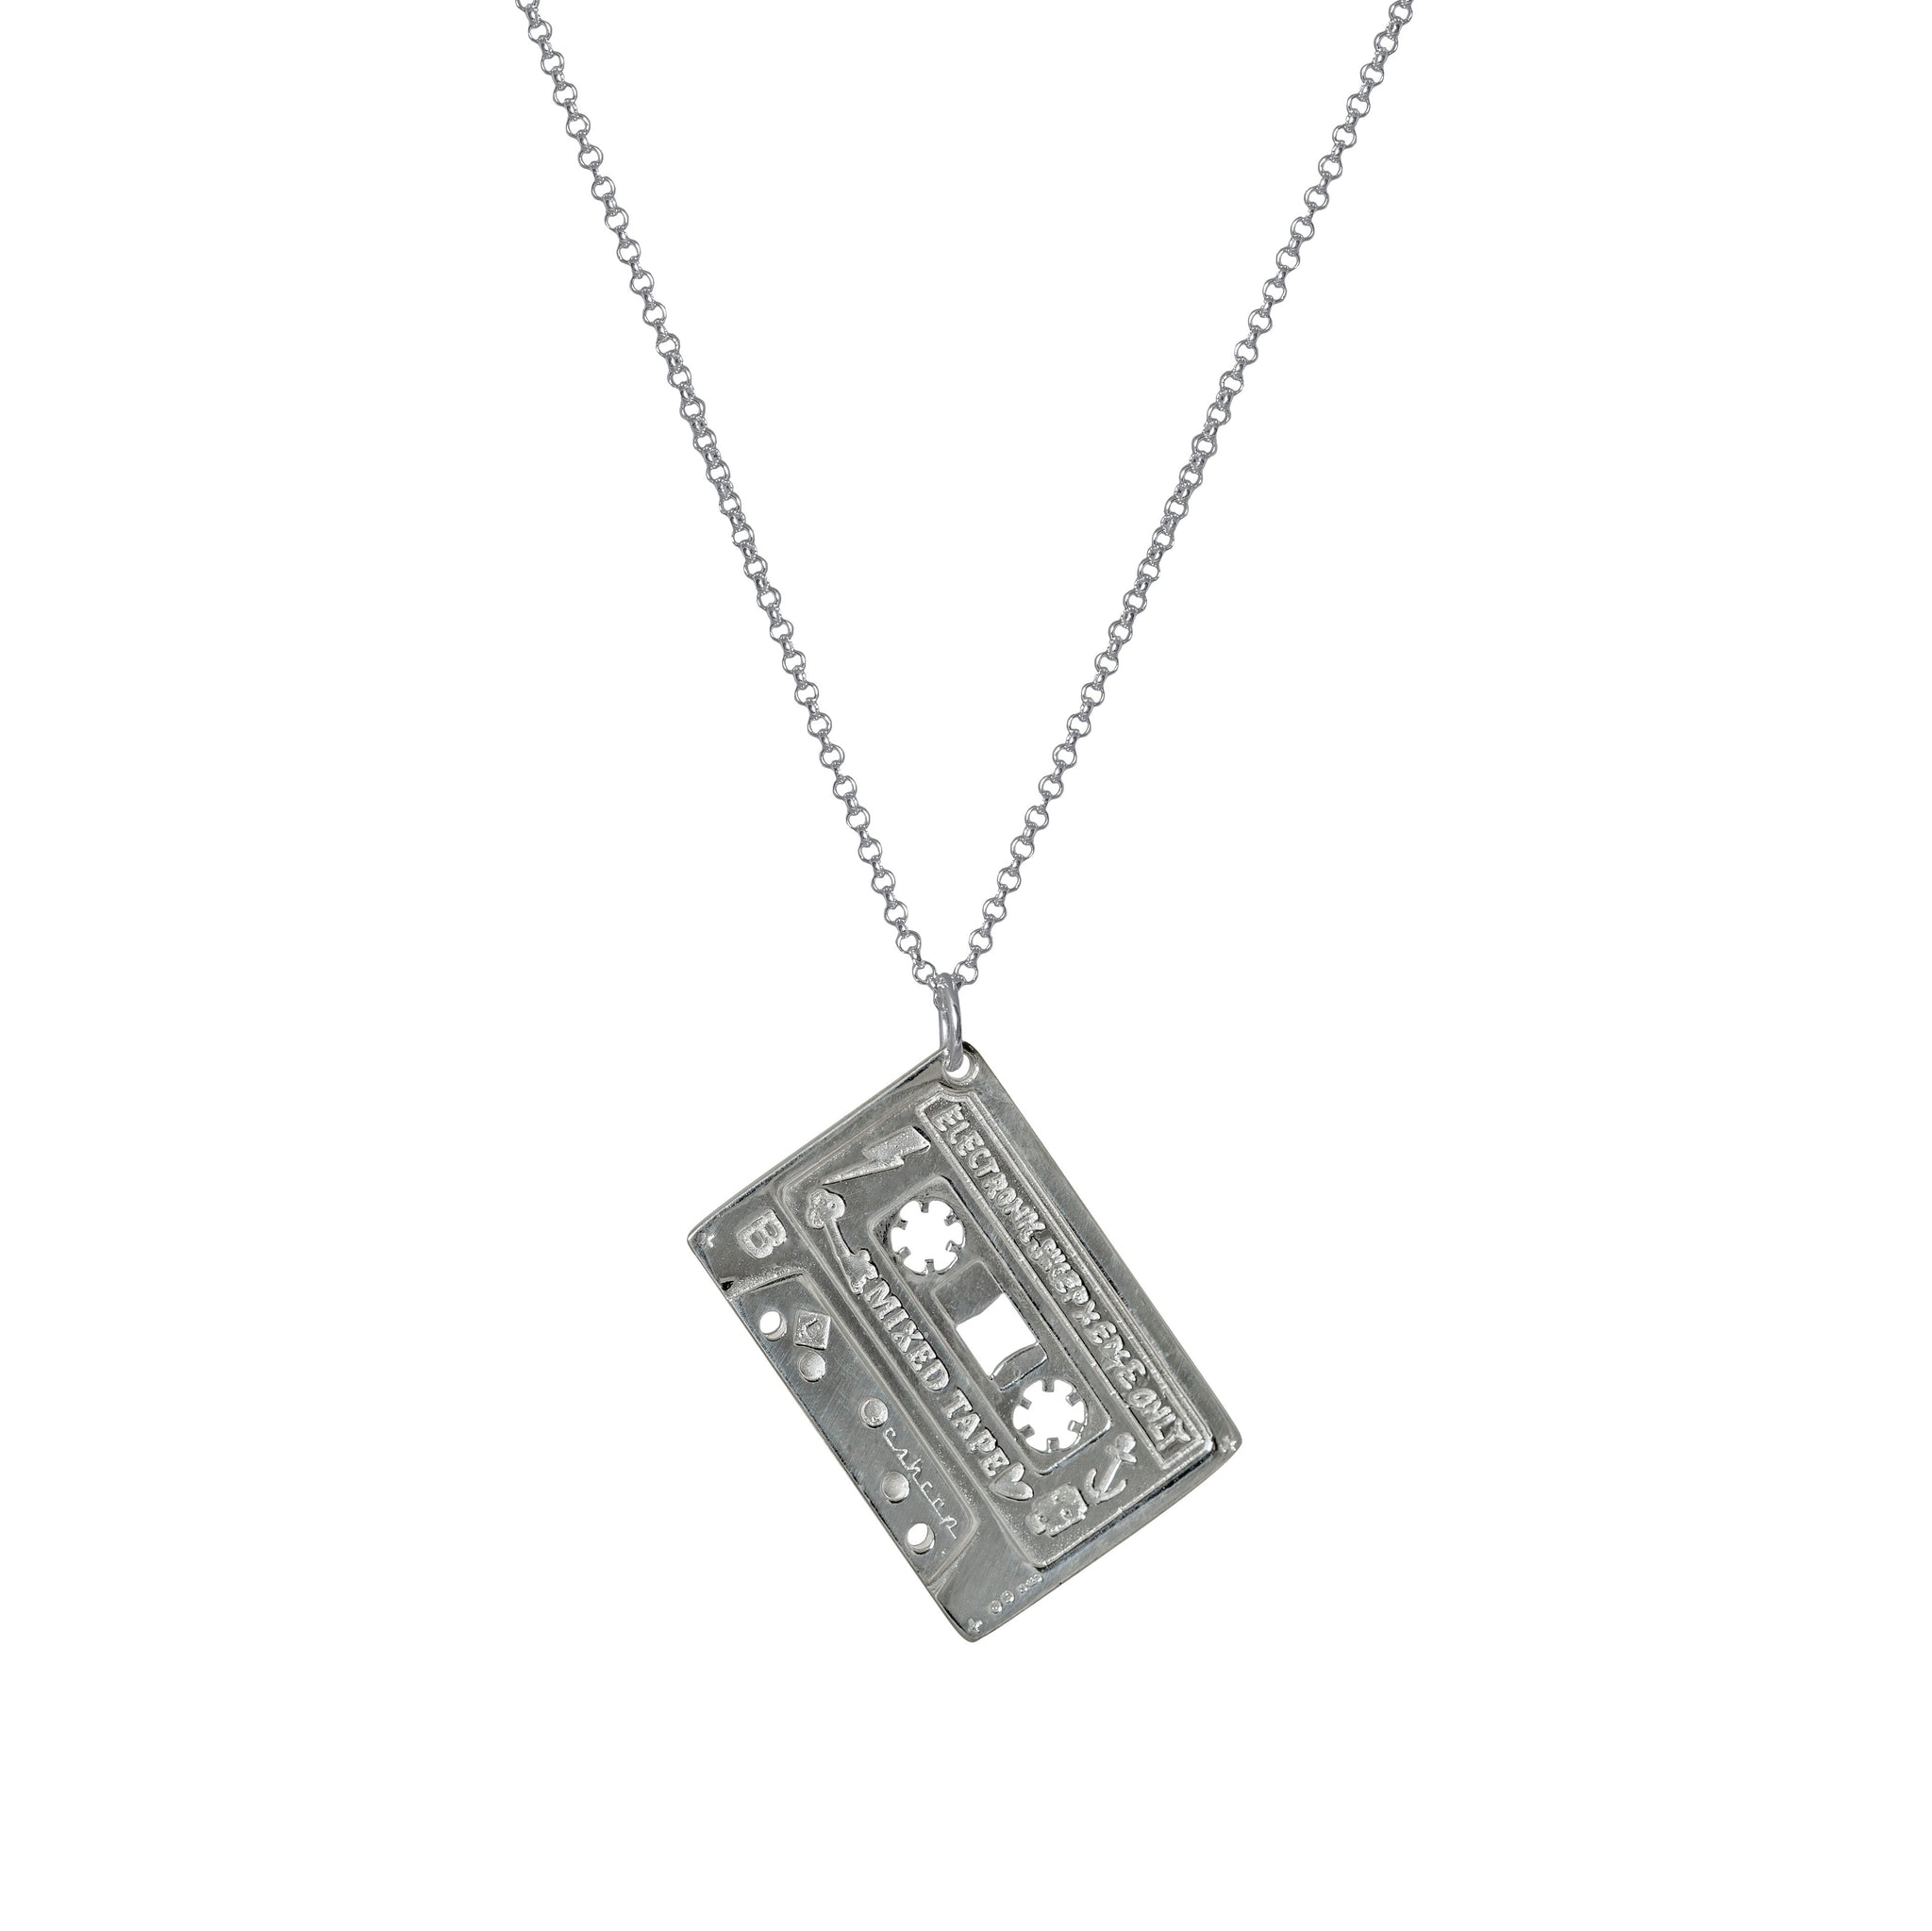 MIXED TAPE Electronic Sheep X Edge Only 'Mixed Tape' Pendant - Sterling Silver